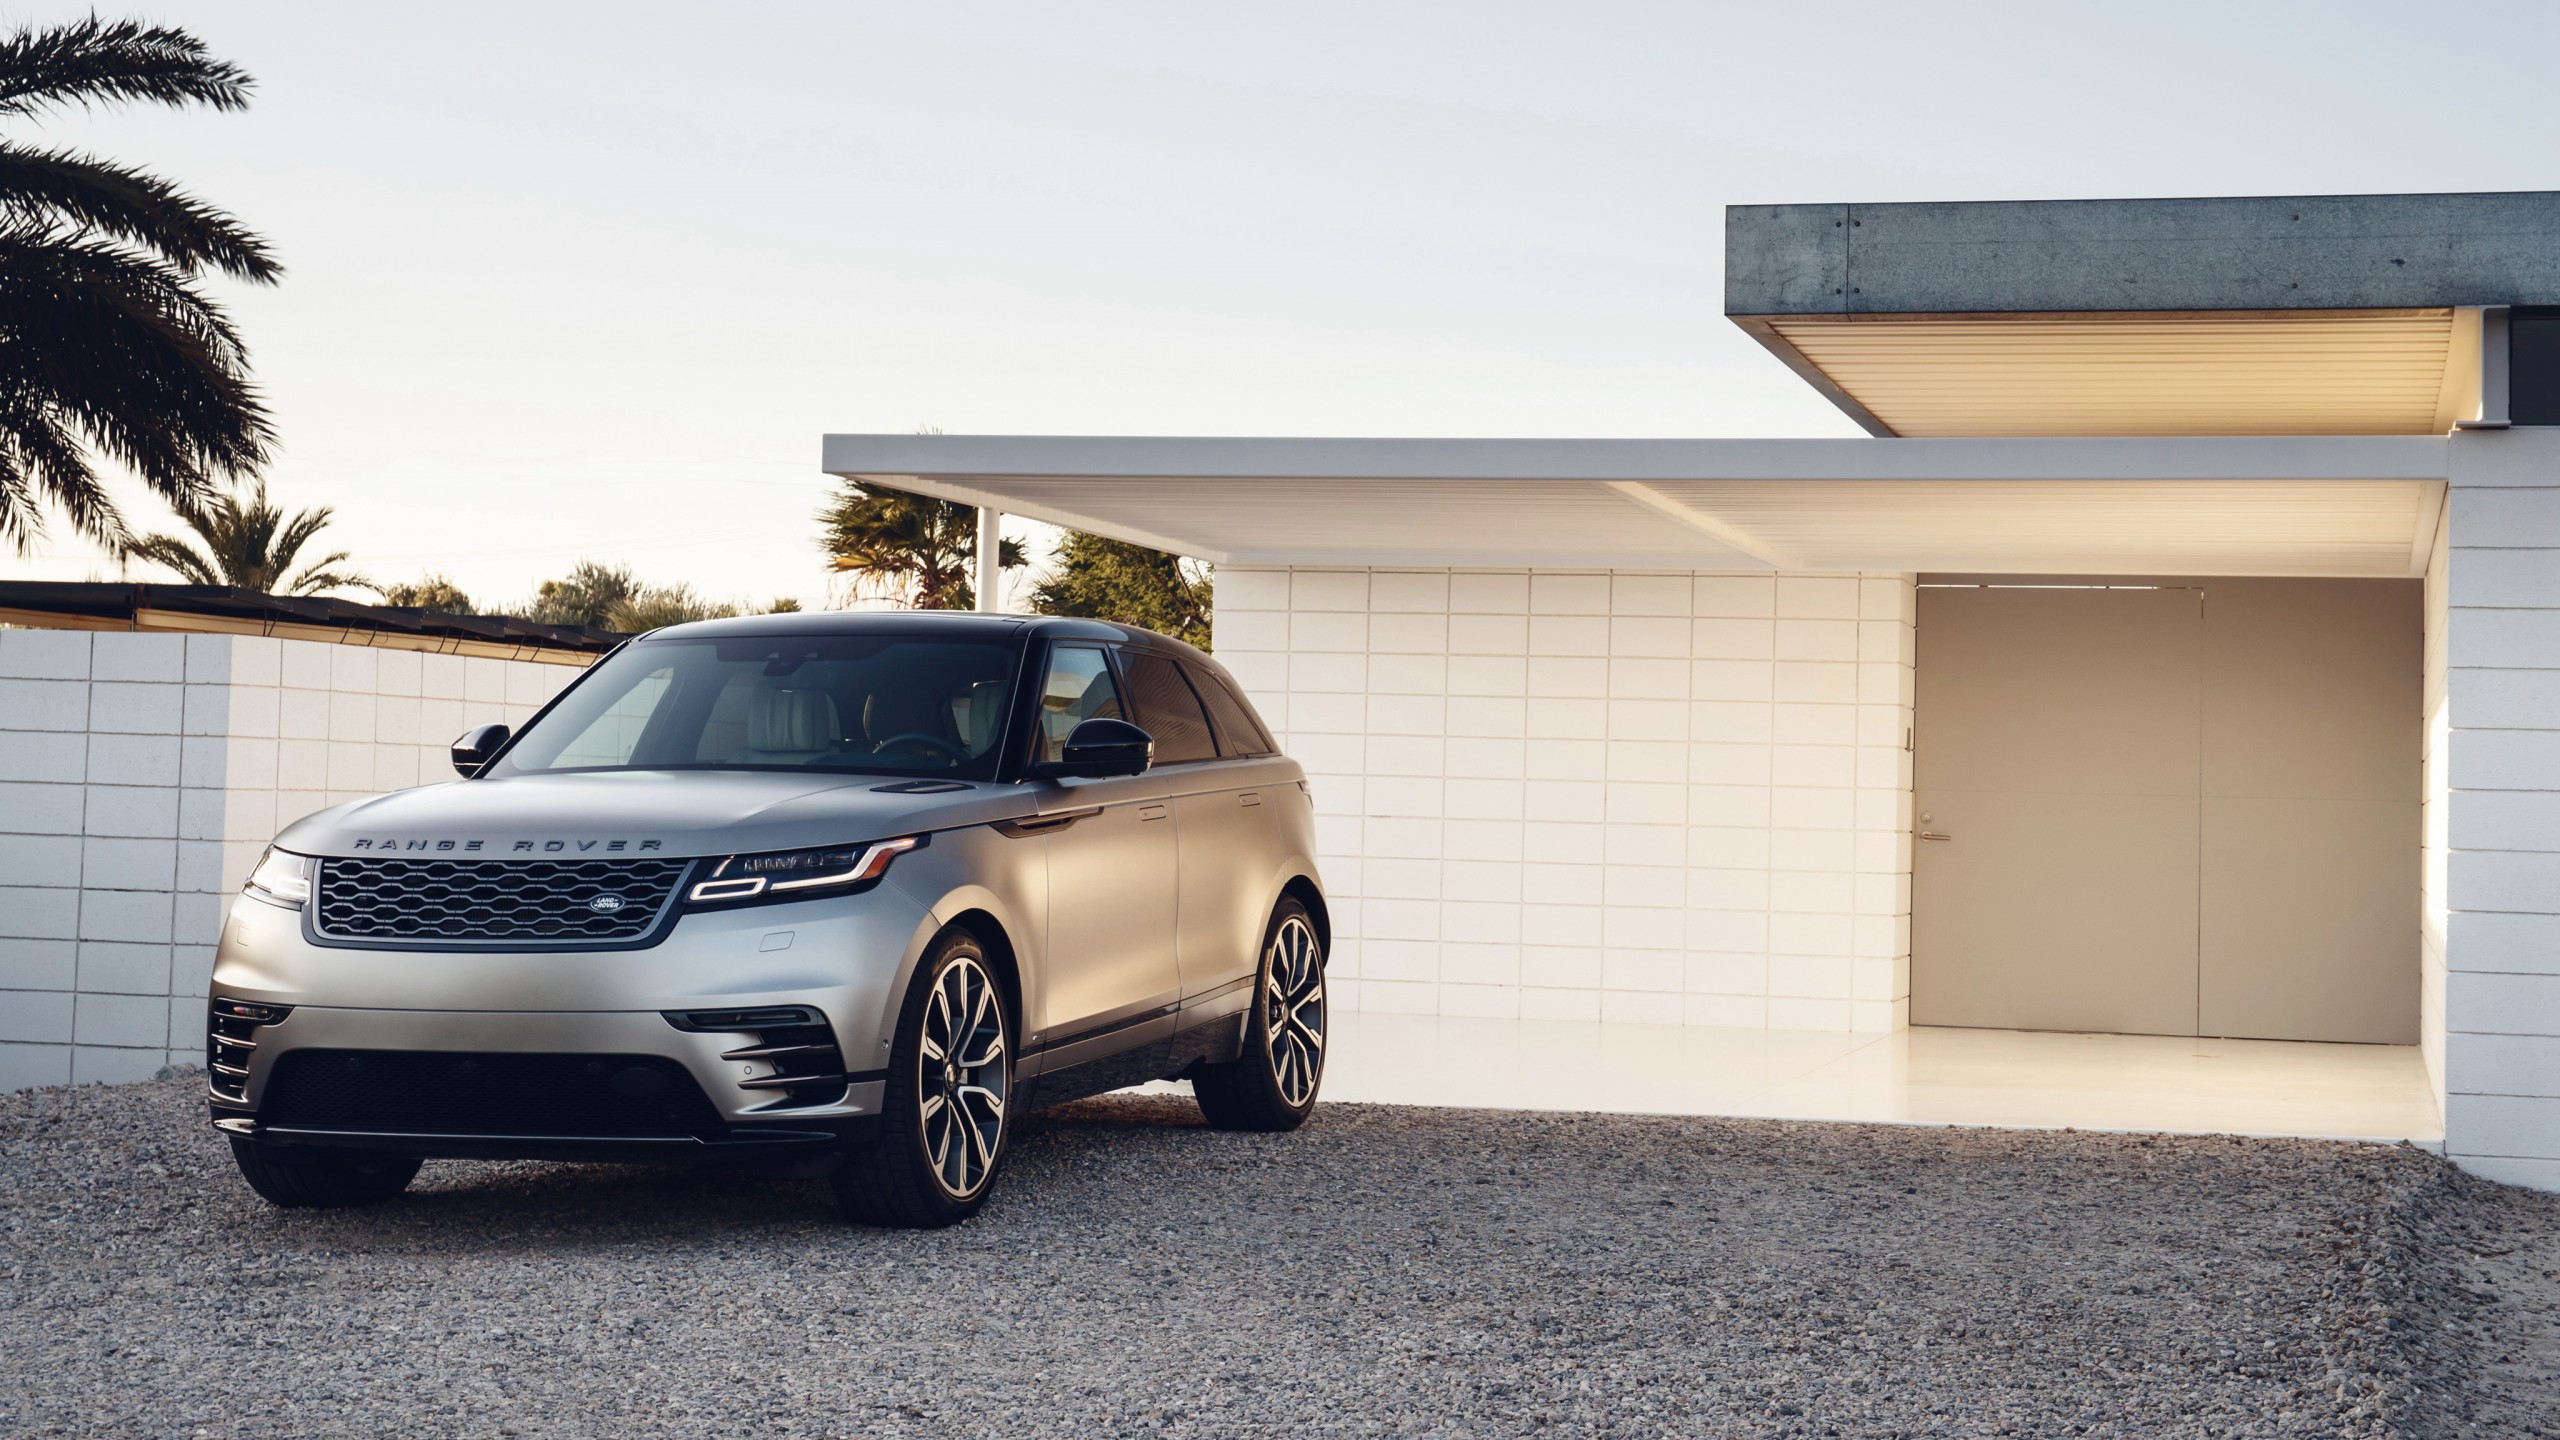 2018 range rover velar r dynamic p380 hse wallpaper hd. Black Bedroom Furniture Sets. Home Design Ideas